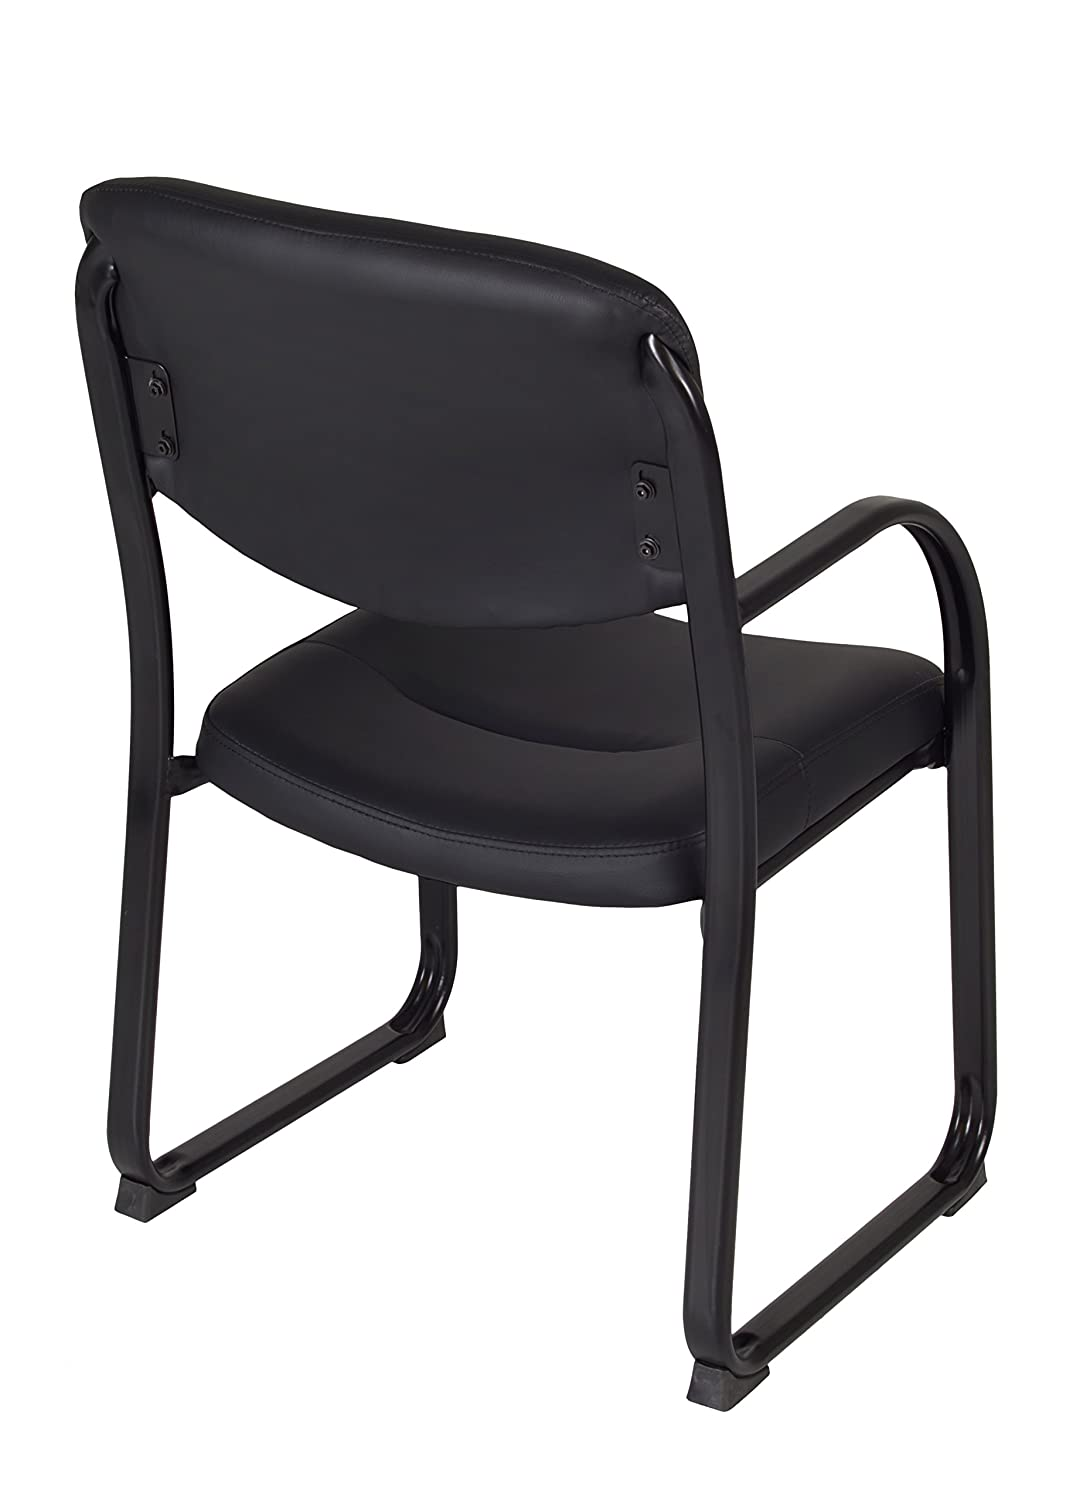 Black Regency Crusoe Leather Guest Chair with Arms